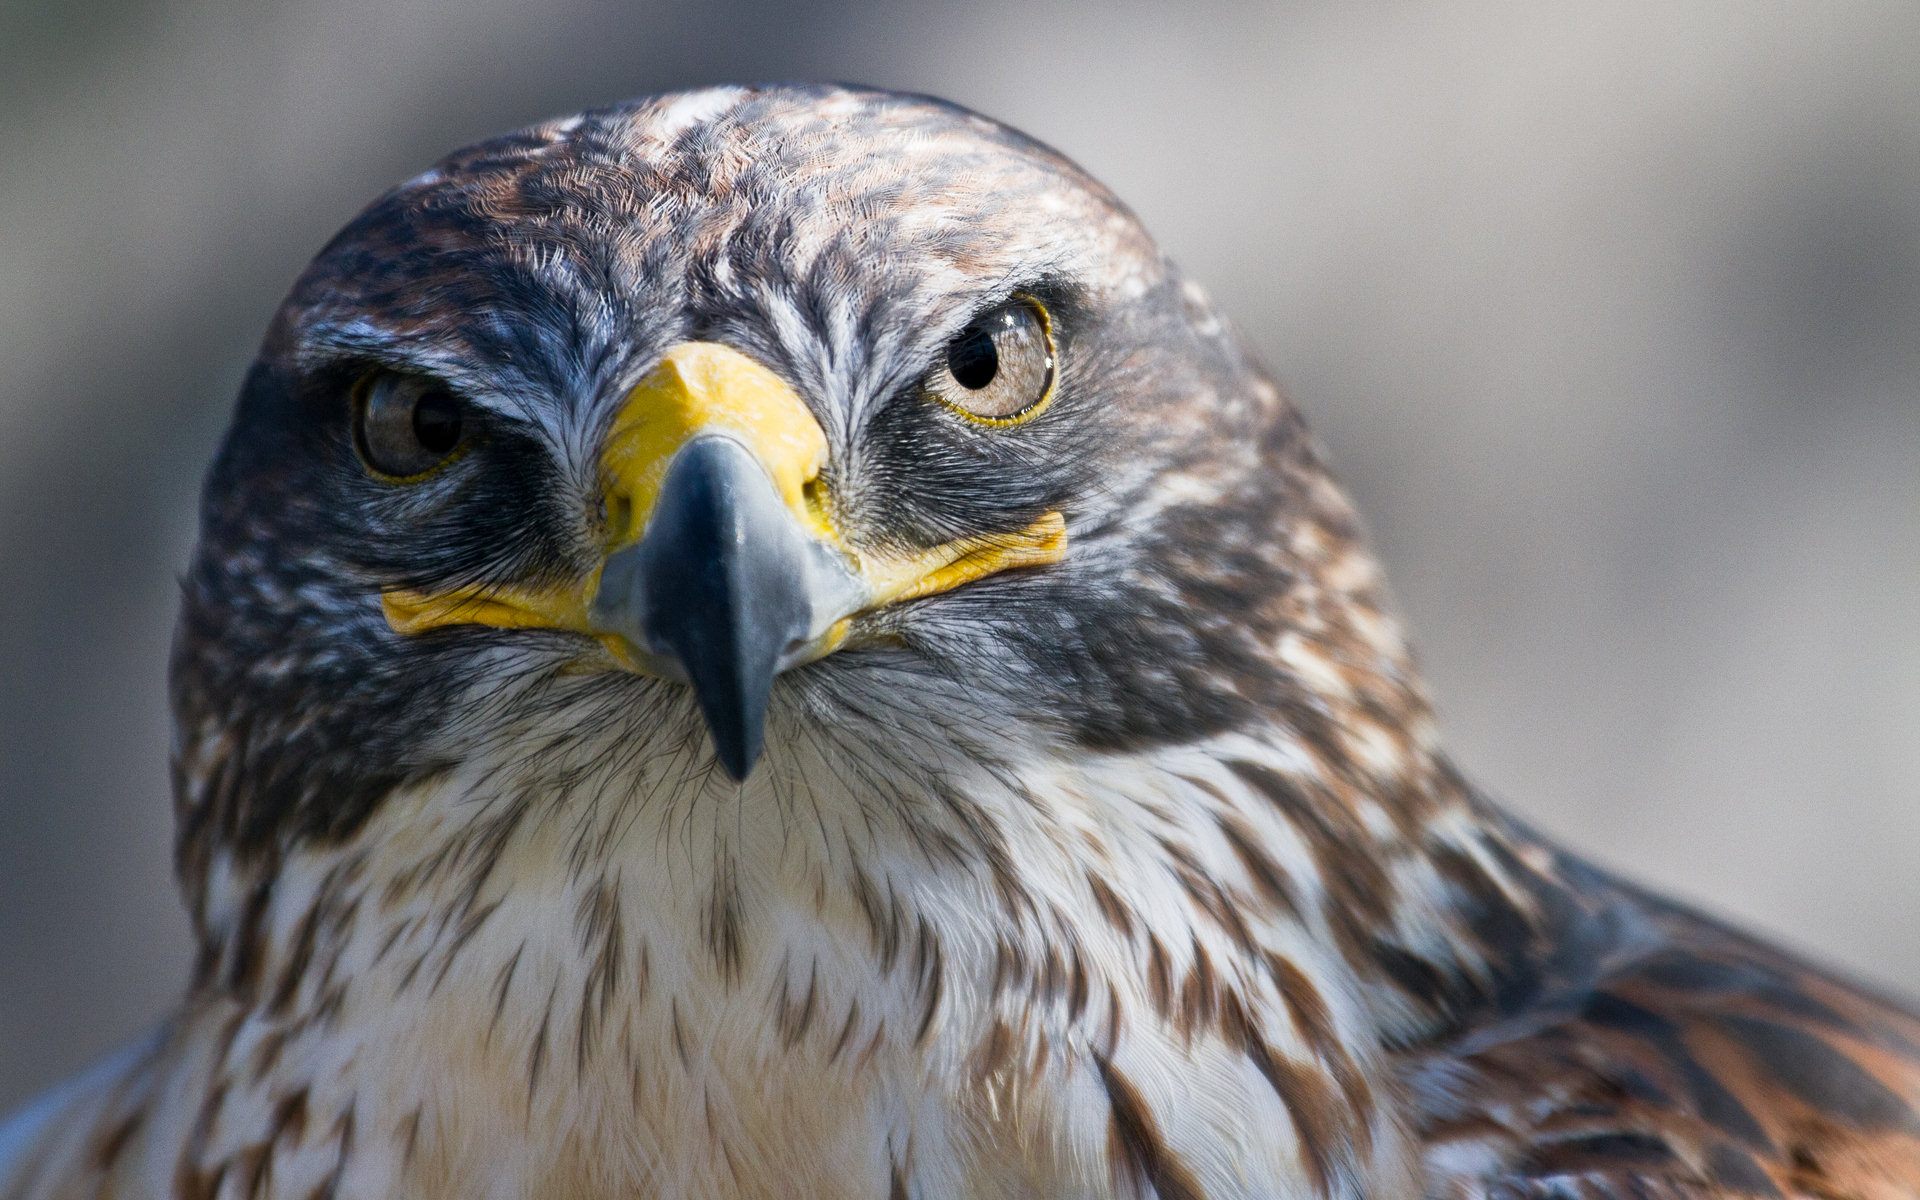 Falcon High Resolution Wallpapers: Falcon Full HD Wallpaper And Background Image